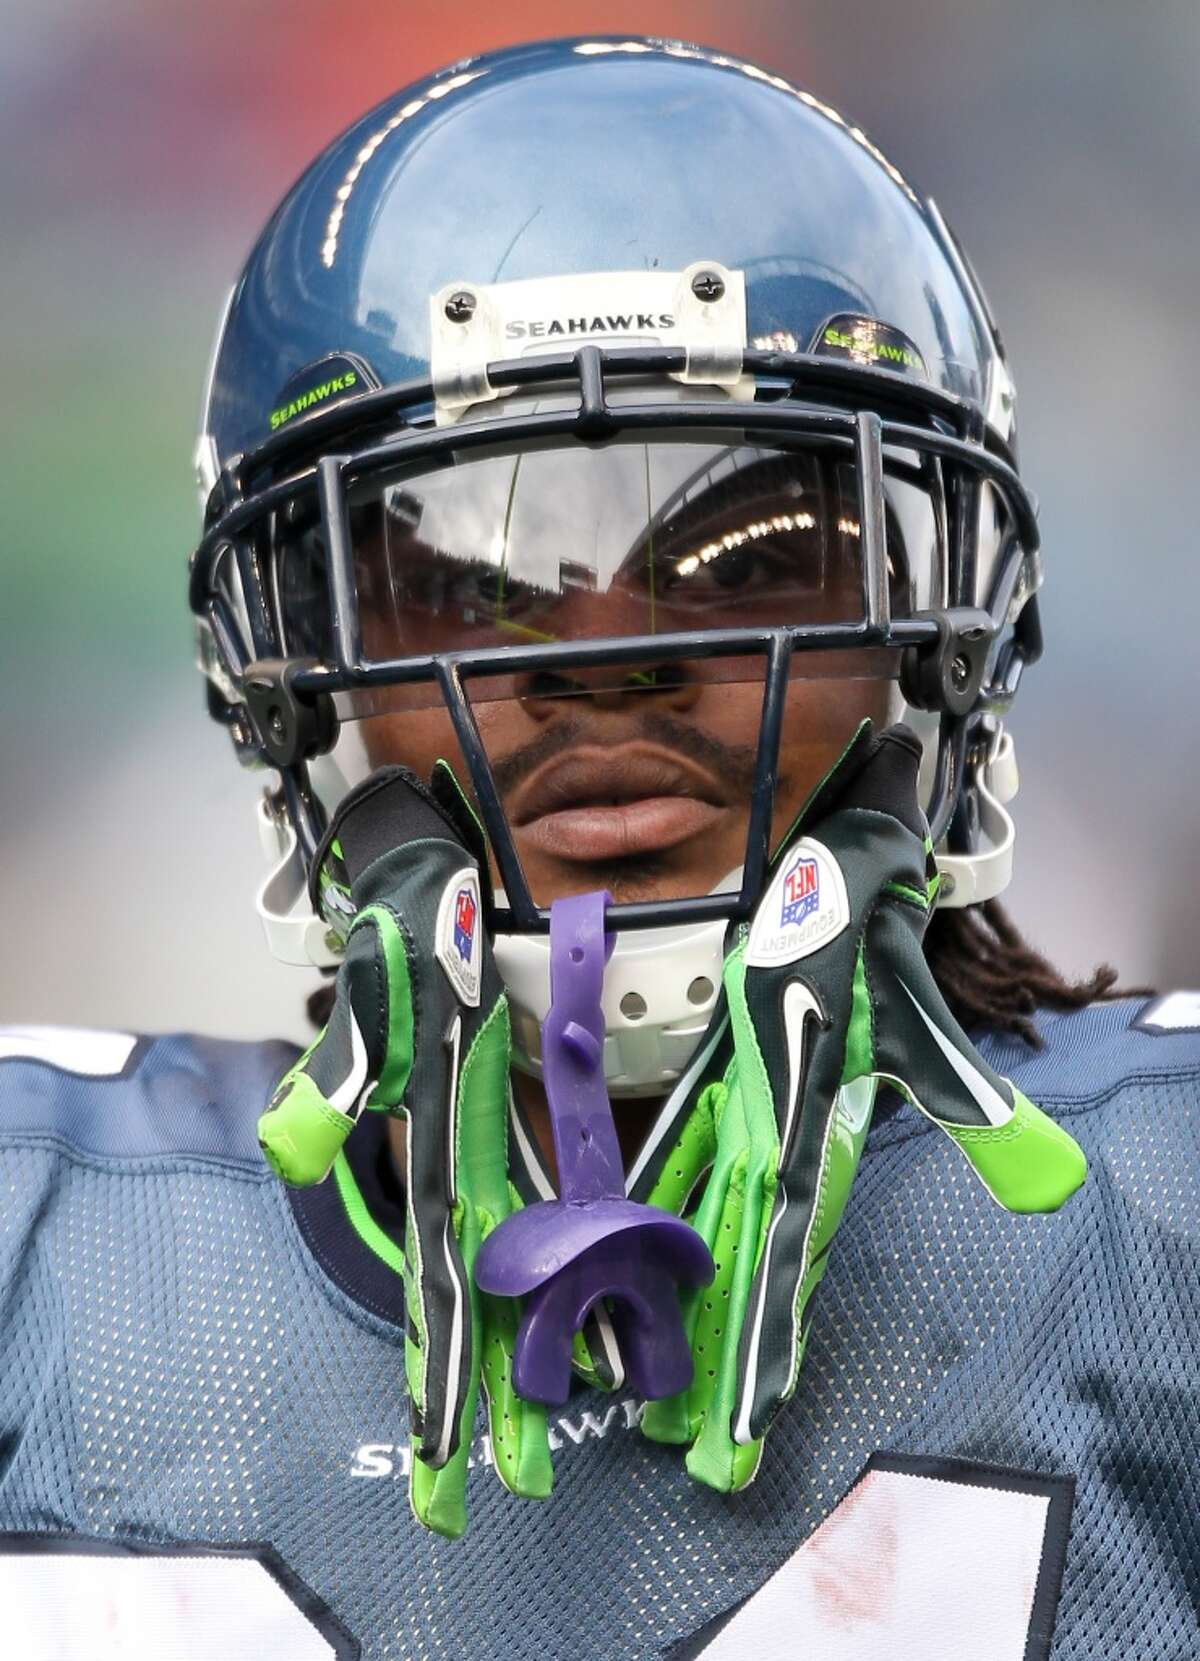 This look -- Lynch's gloves hanging out of his facemask -- soon became a familiar sight at CenturyLink Field. But he didn't prove himself to Seattle's 12th Man until the playoffs that 2010 season.